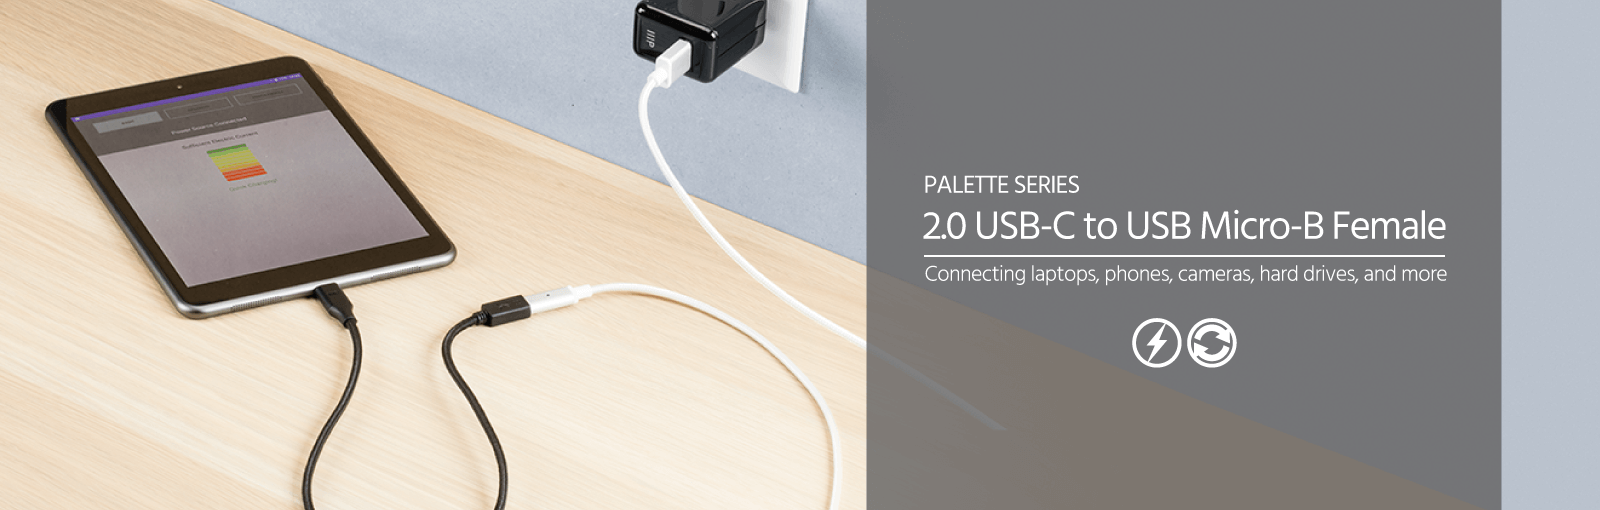 Palette Series 2.0 USB-C to Micro B (F)